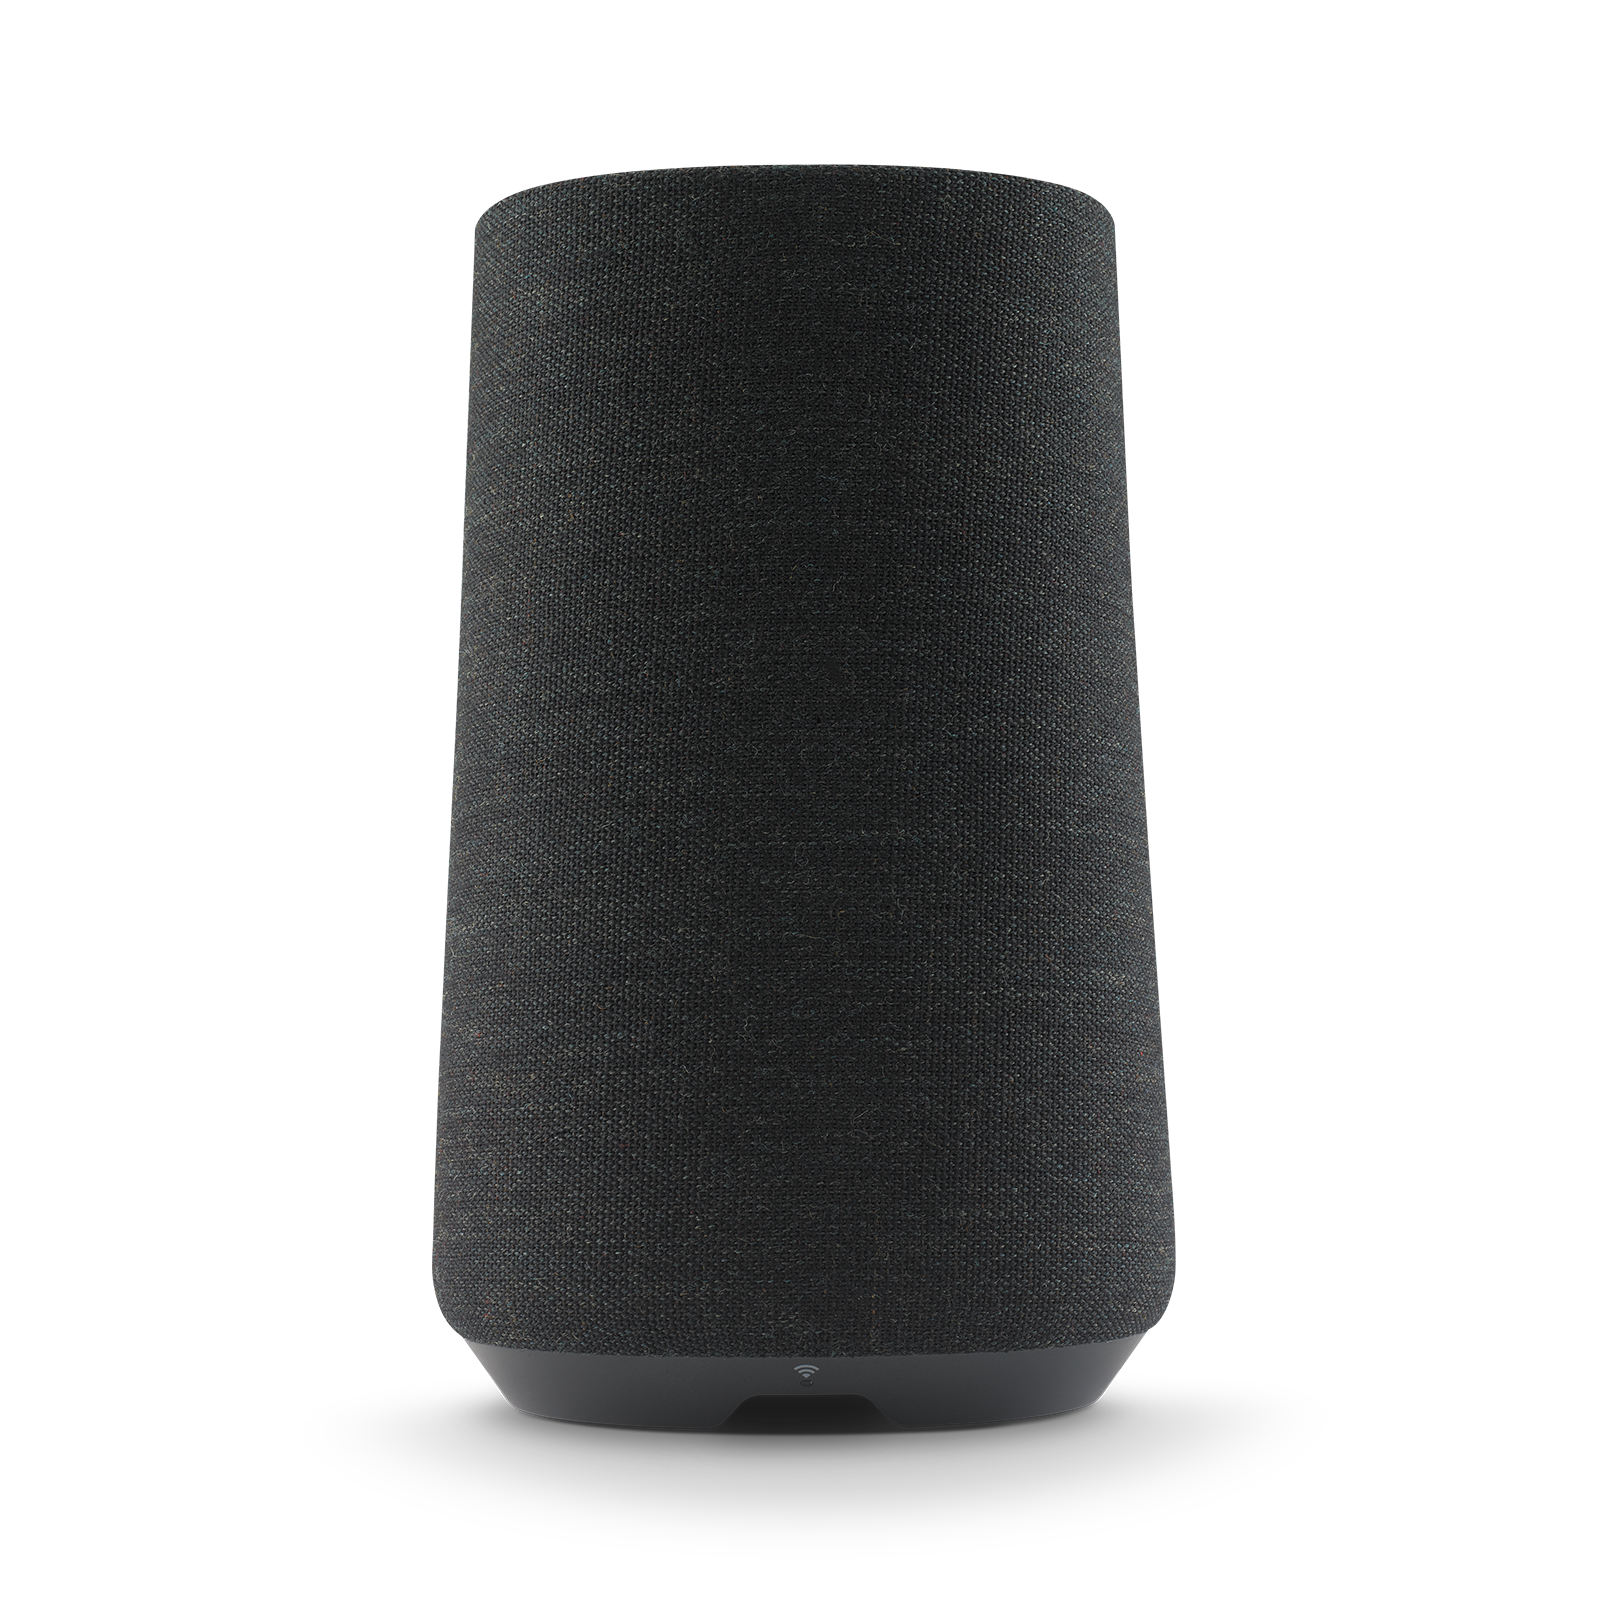 Harman Kardon Citation 100 MKII - Black - Bring rich wireless sound to any space with the smart and compact Harman Kardon Citation 100 mkII. Its innovative features include AirPlay, Chromecast built-in and the Google Assistant. - Back